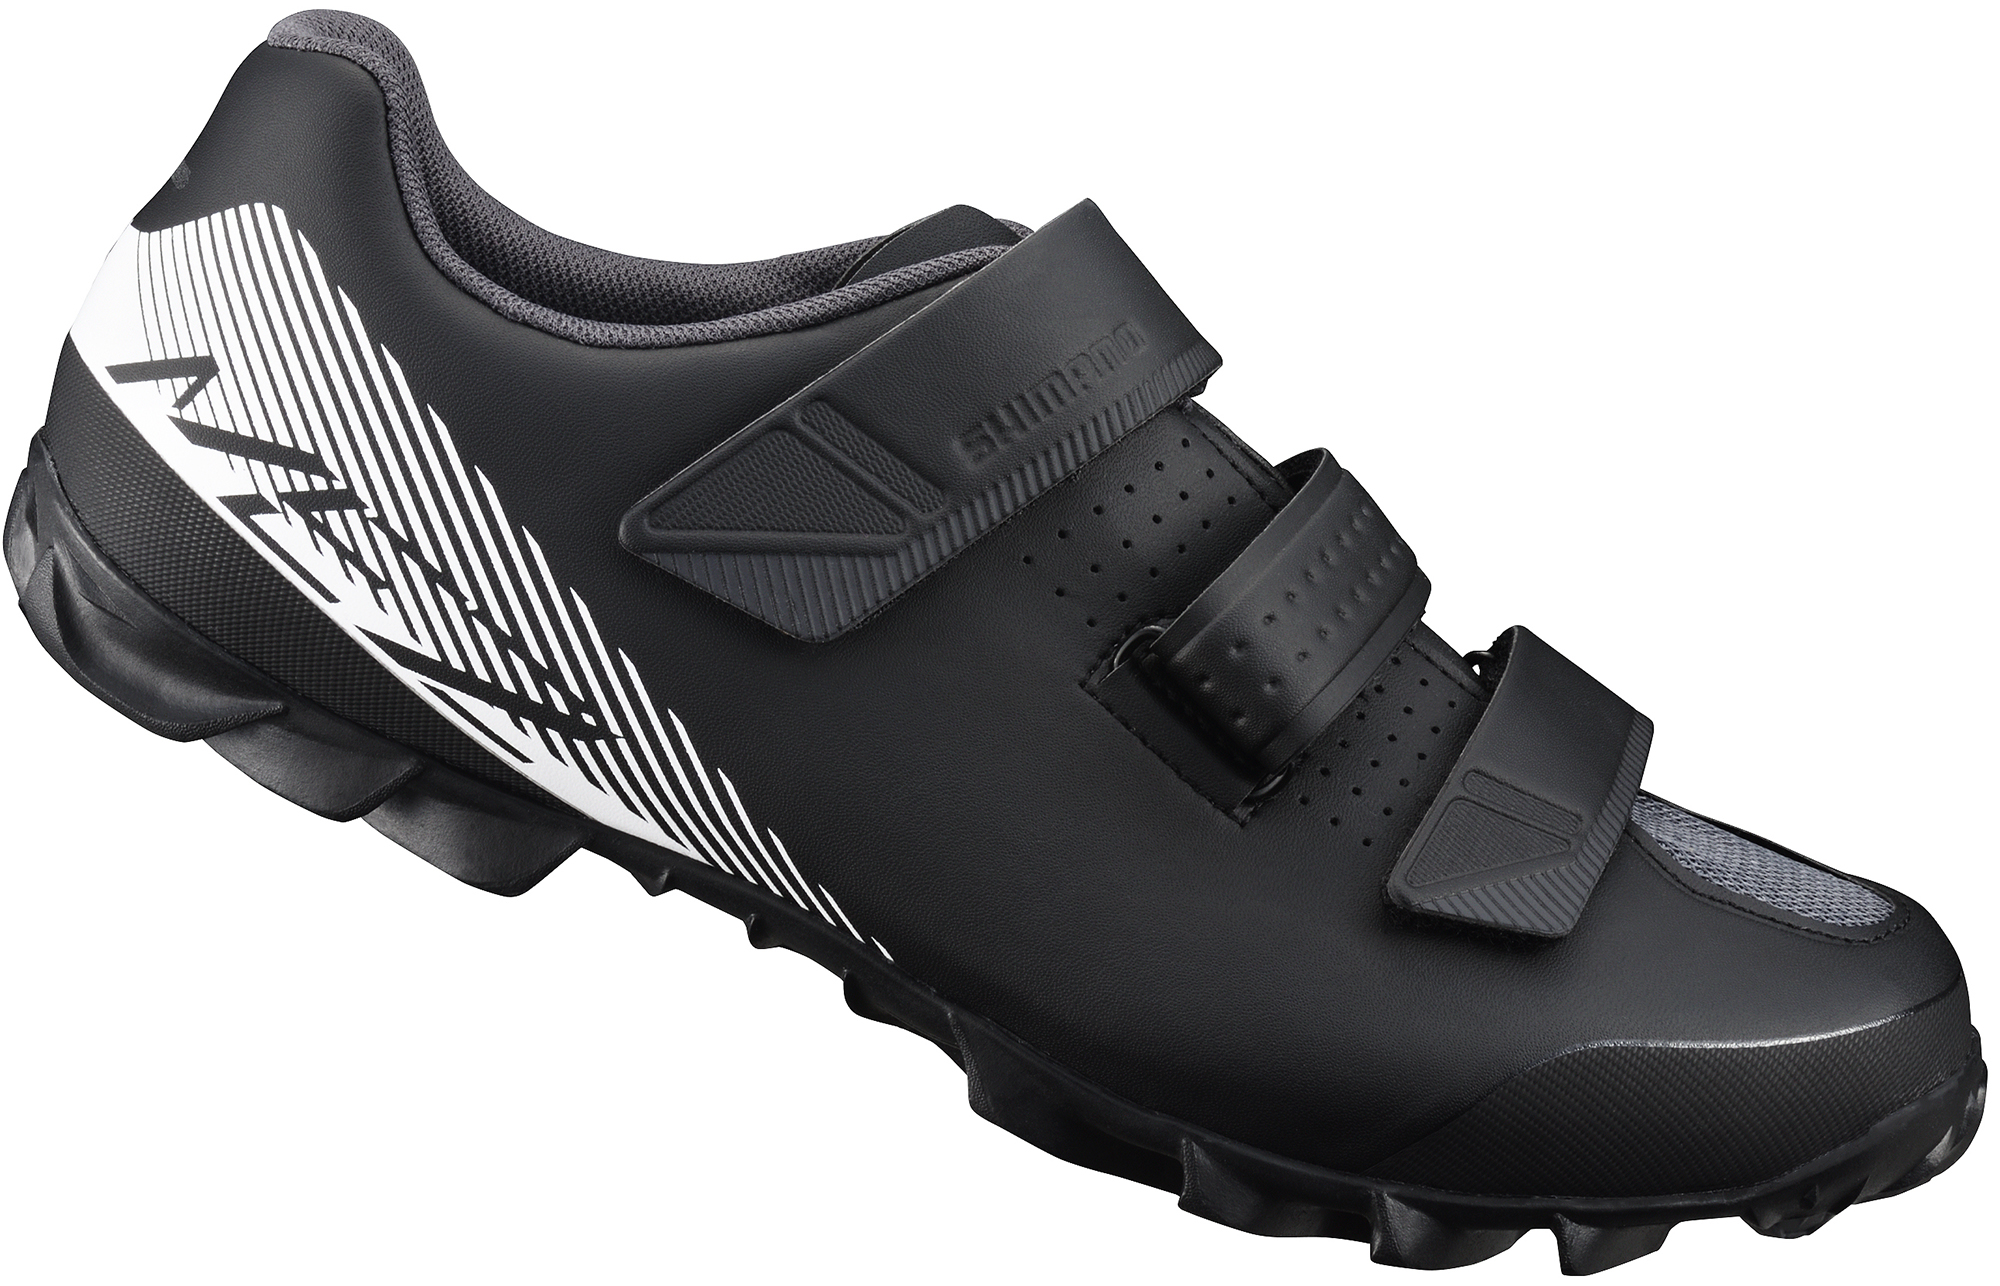 6bf3c267d25 Wiggle | Shimano ME2 SPD Mountain Bike Shoes | Cycling Shoes